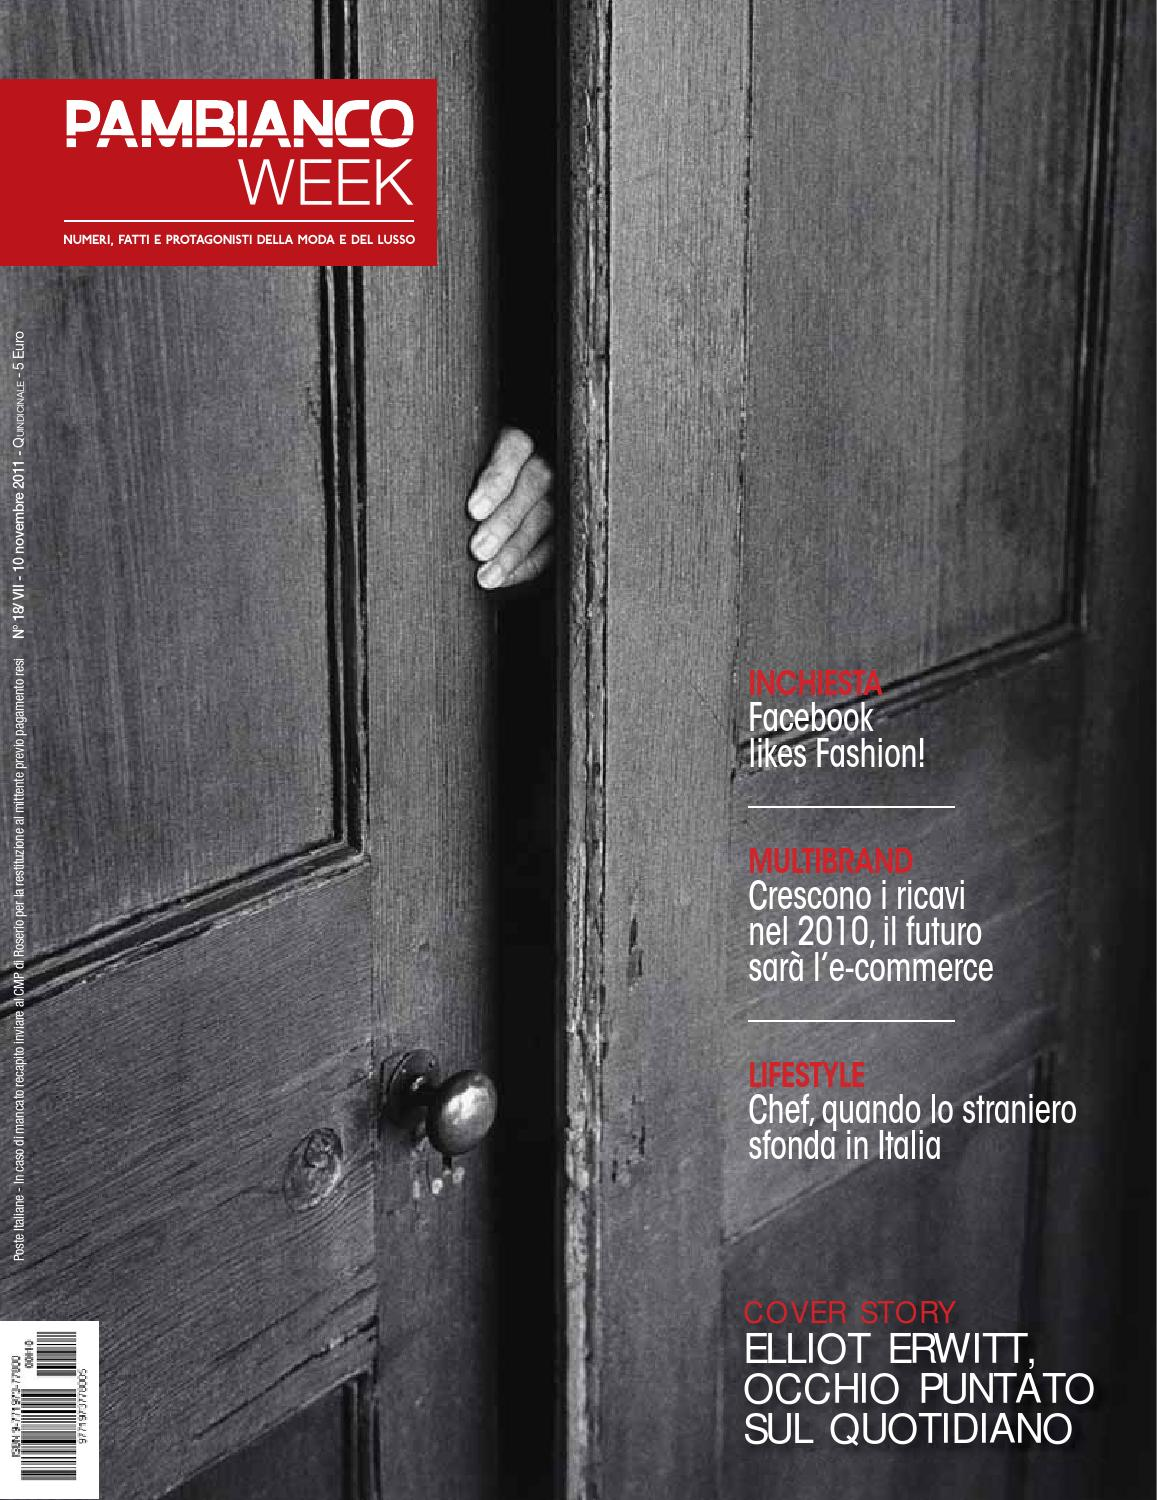 Pambianco WEEK N.18 VII by Pambianconews issuu